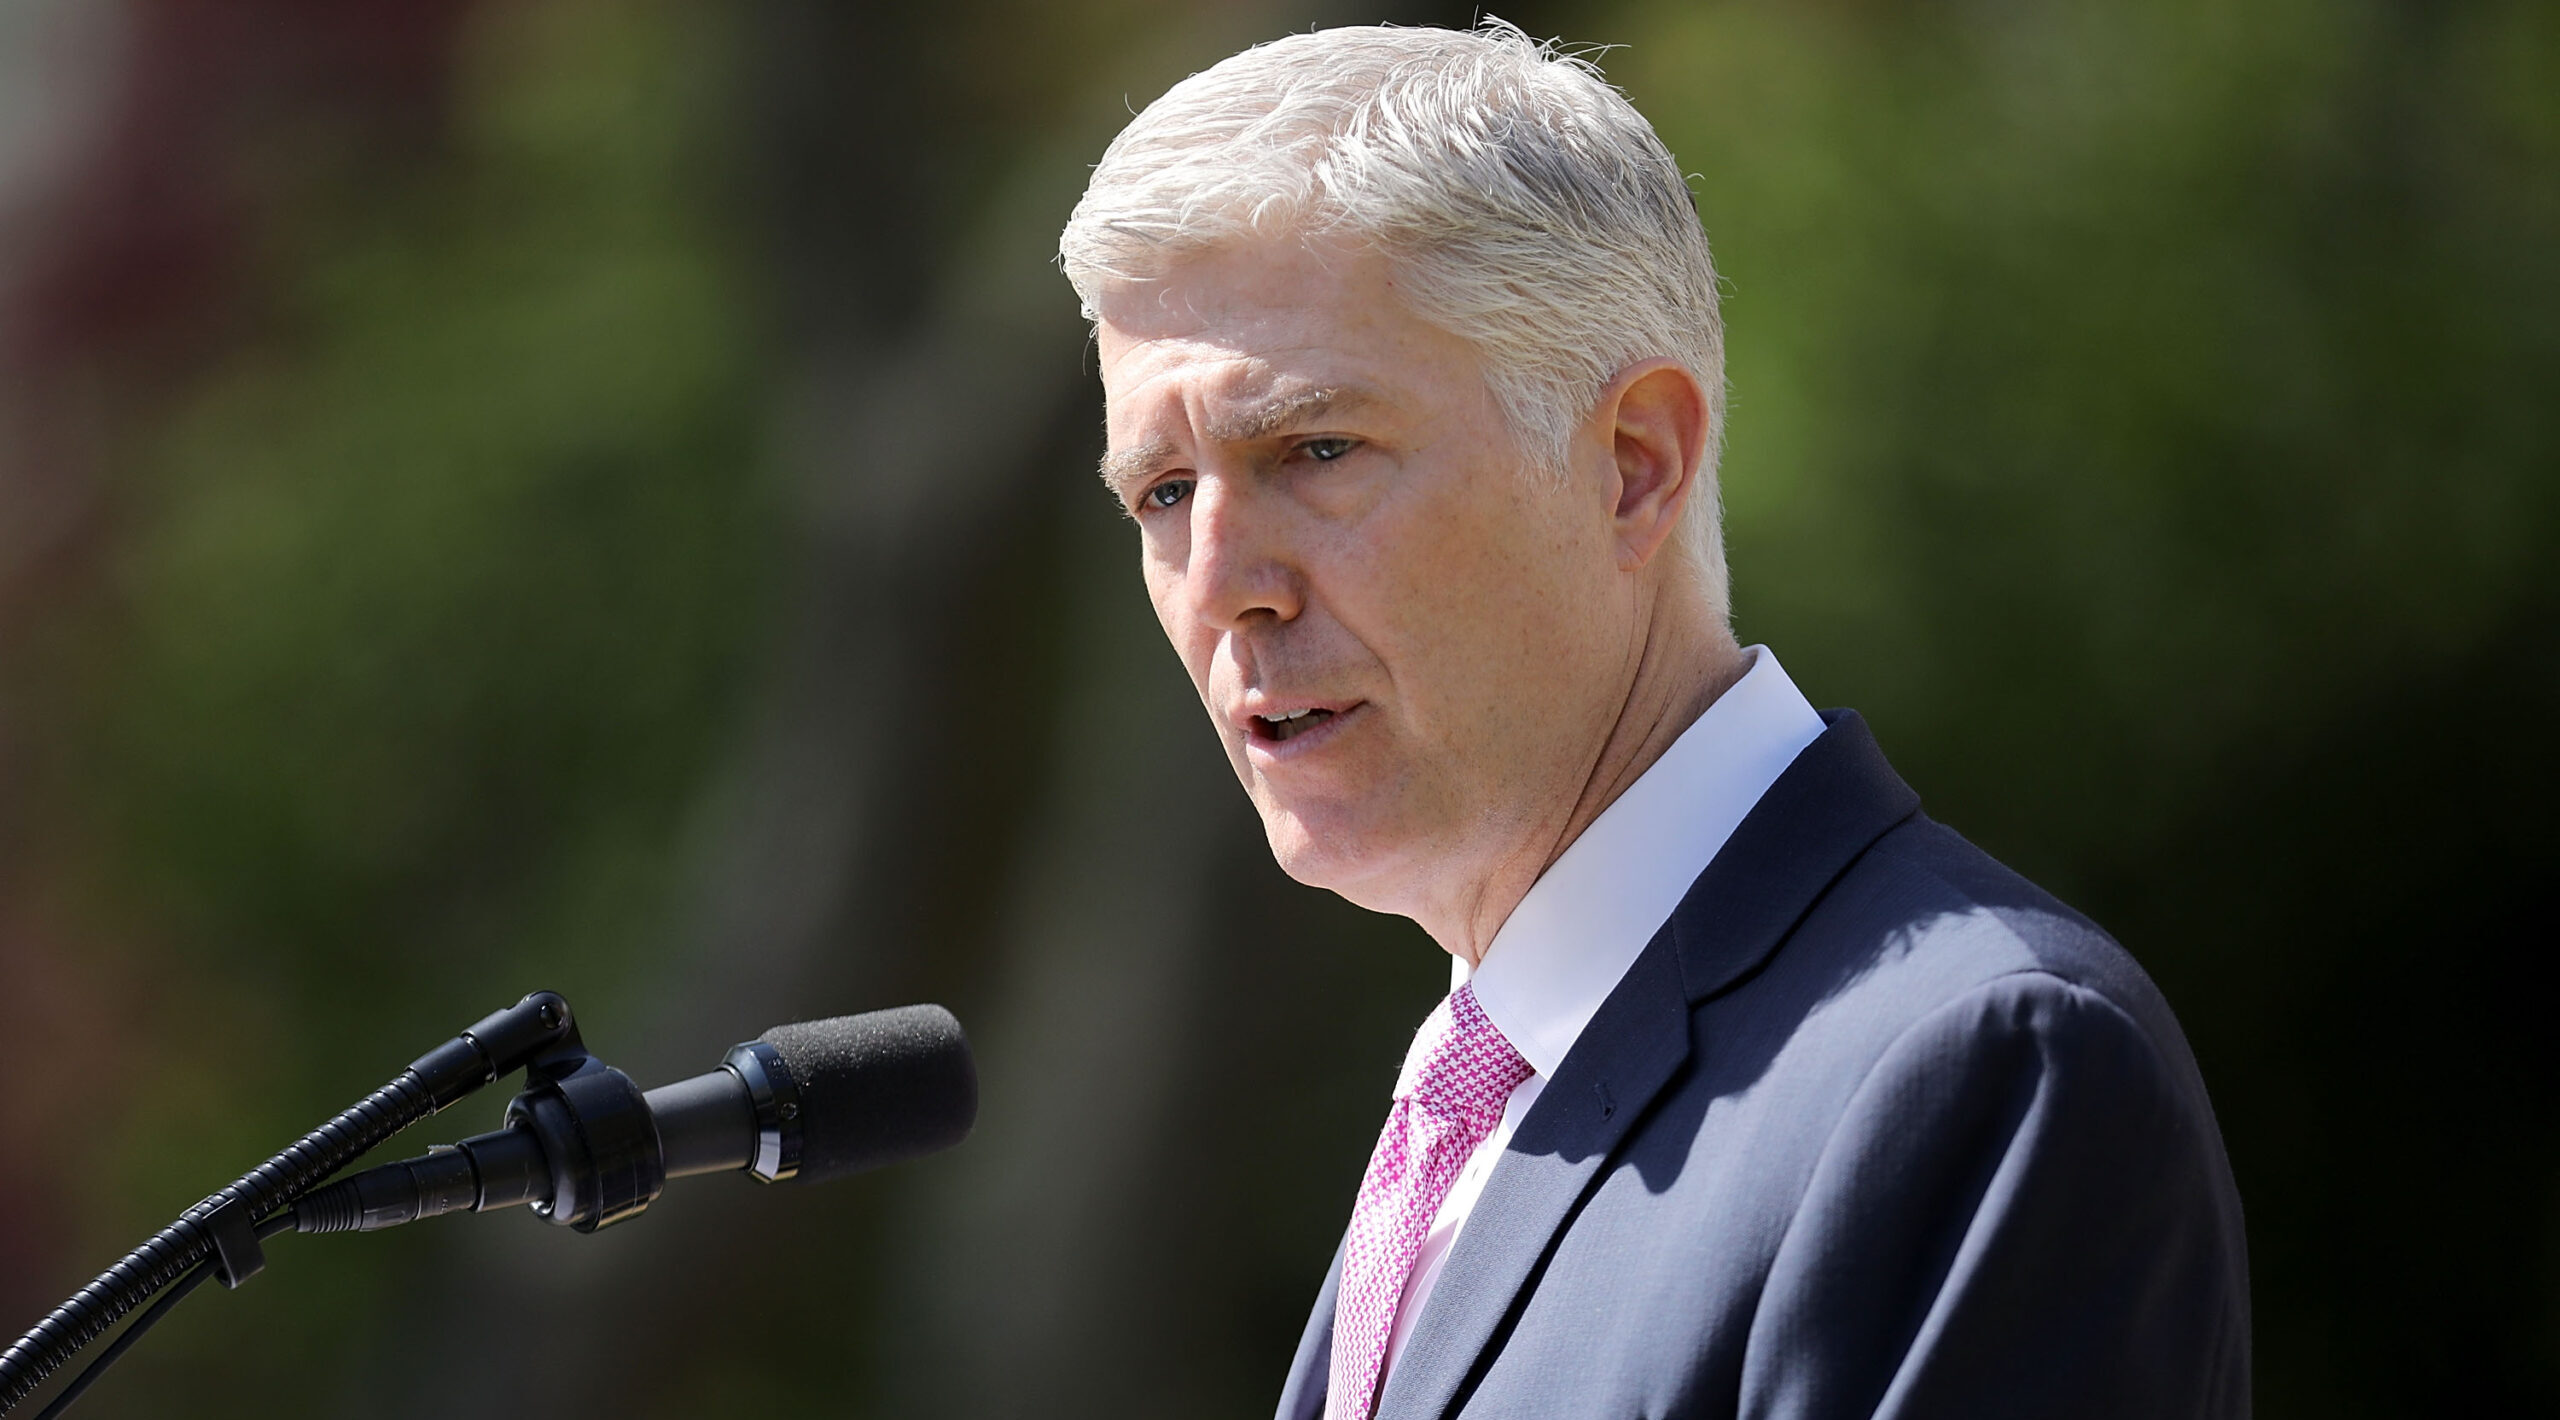 Justice Neil Gorsuch suggested New York's COVID restrictions hold back Orthodox Jewish women. The truth...